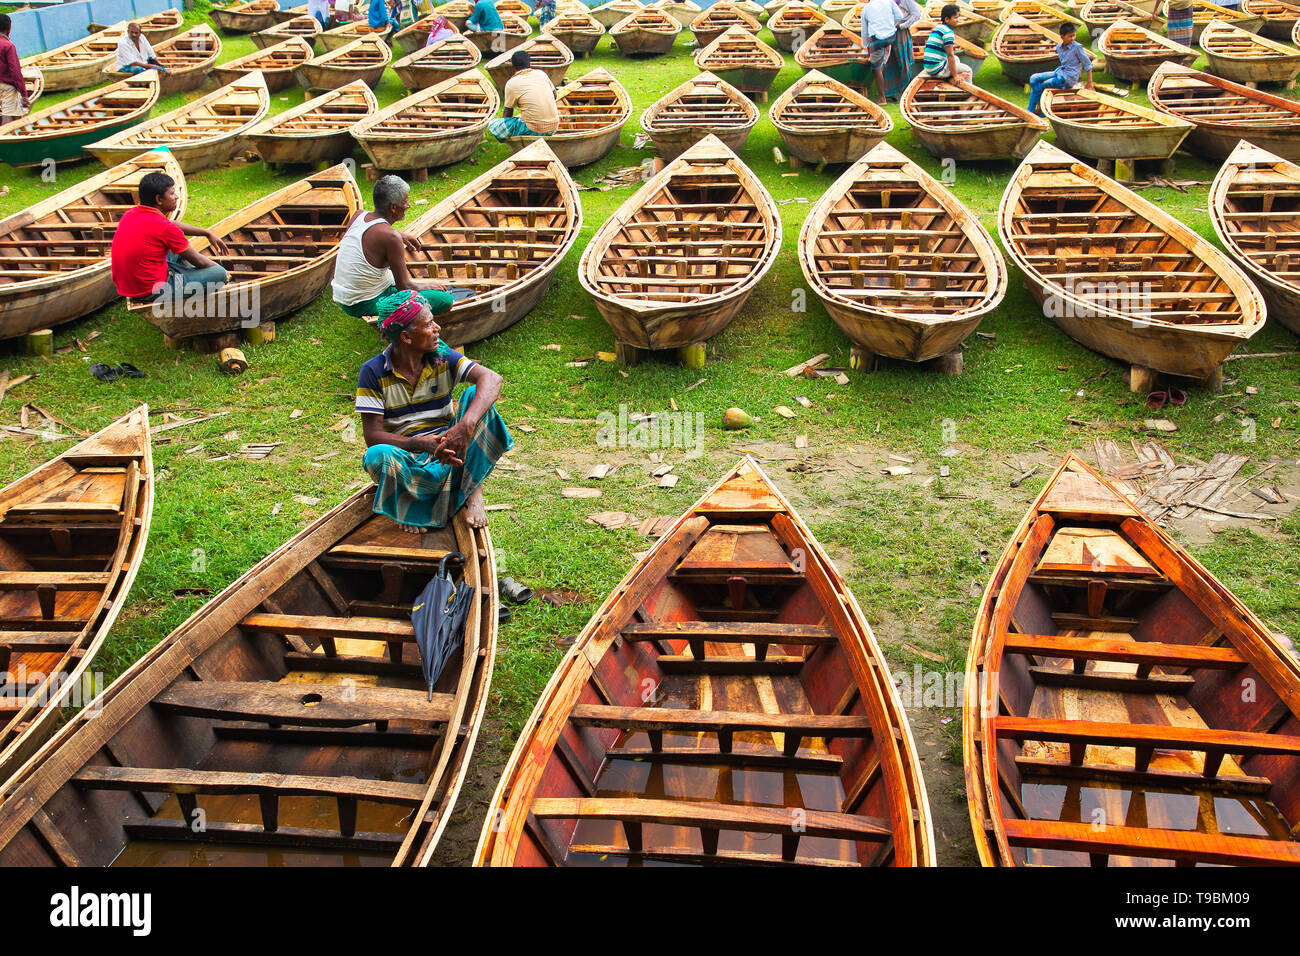 Hundreds of little wooden boats seen displayed for sale at a